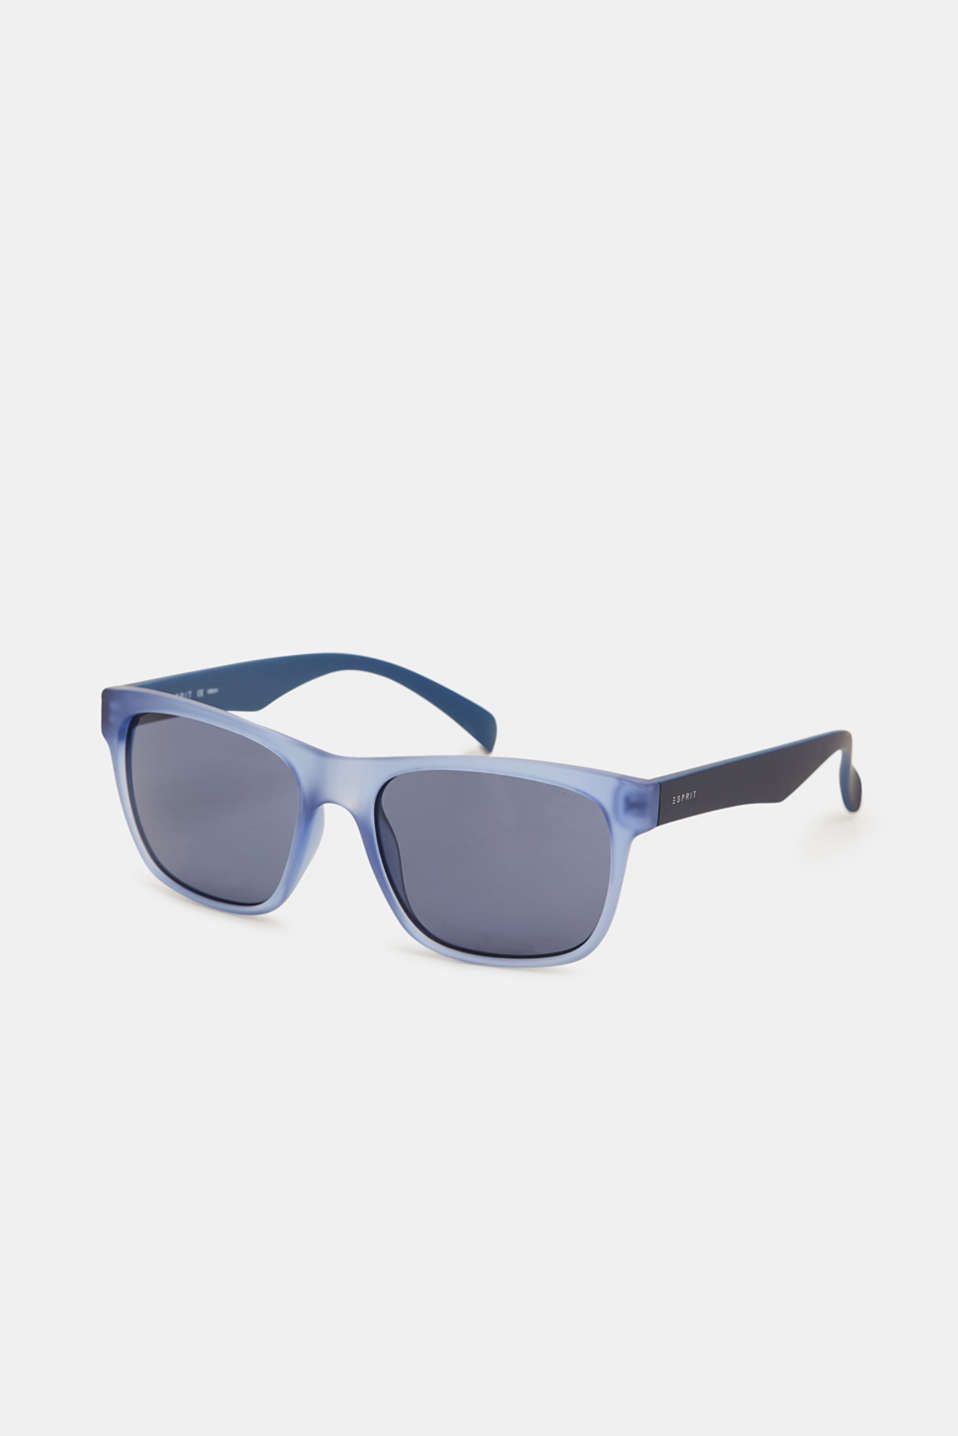 Esprit - Sunglasses with matte finish